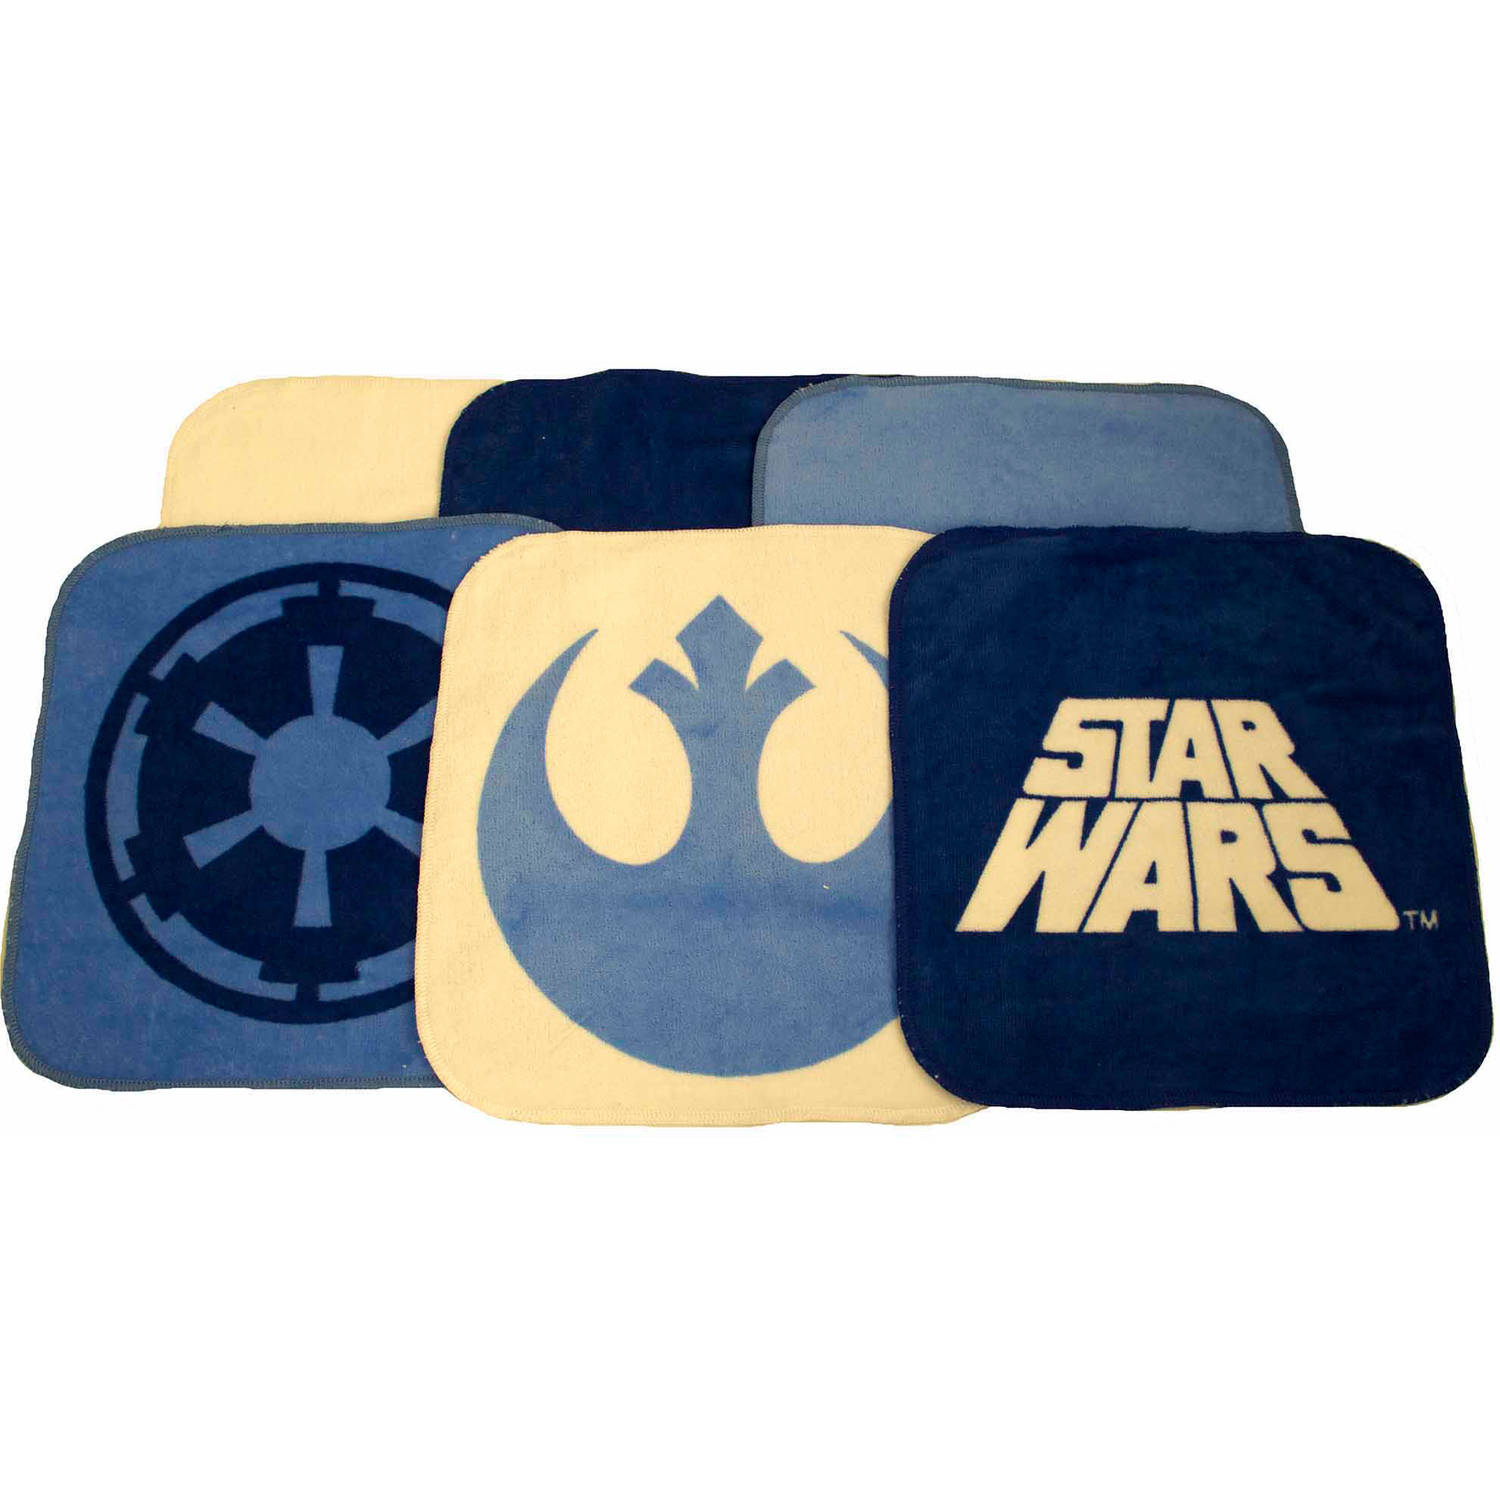 Star Wars Washcloths, Set of 6